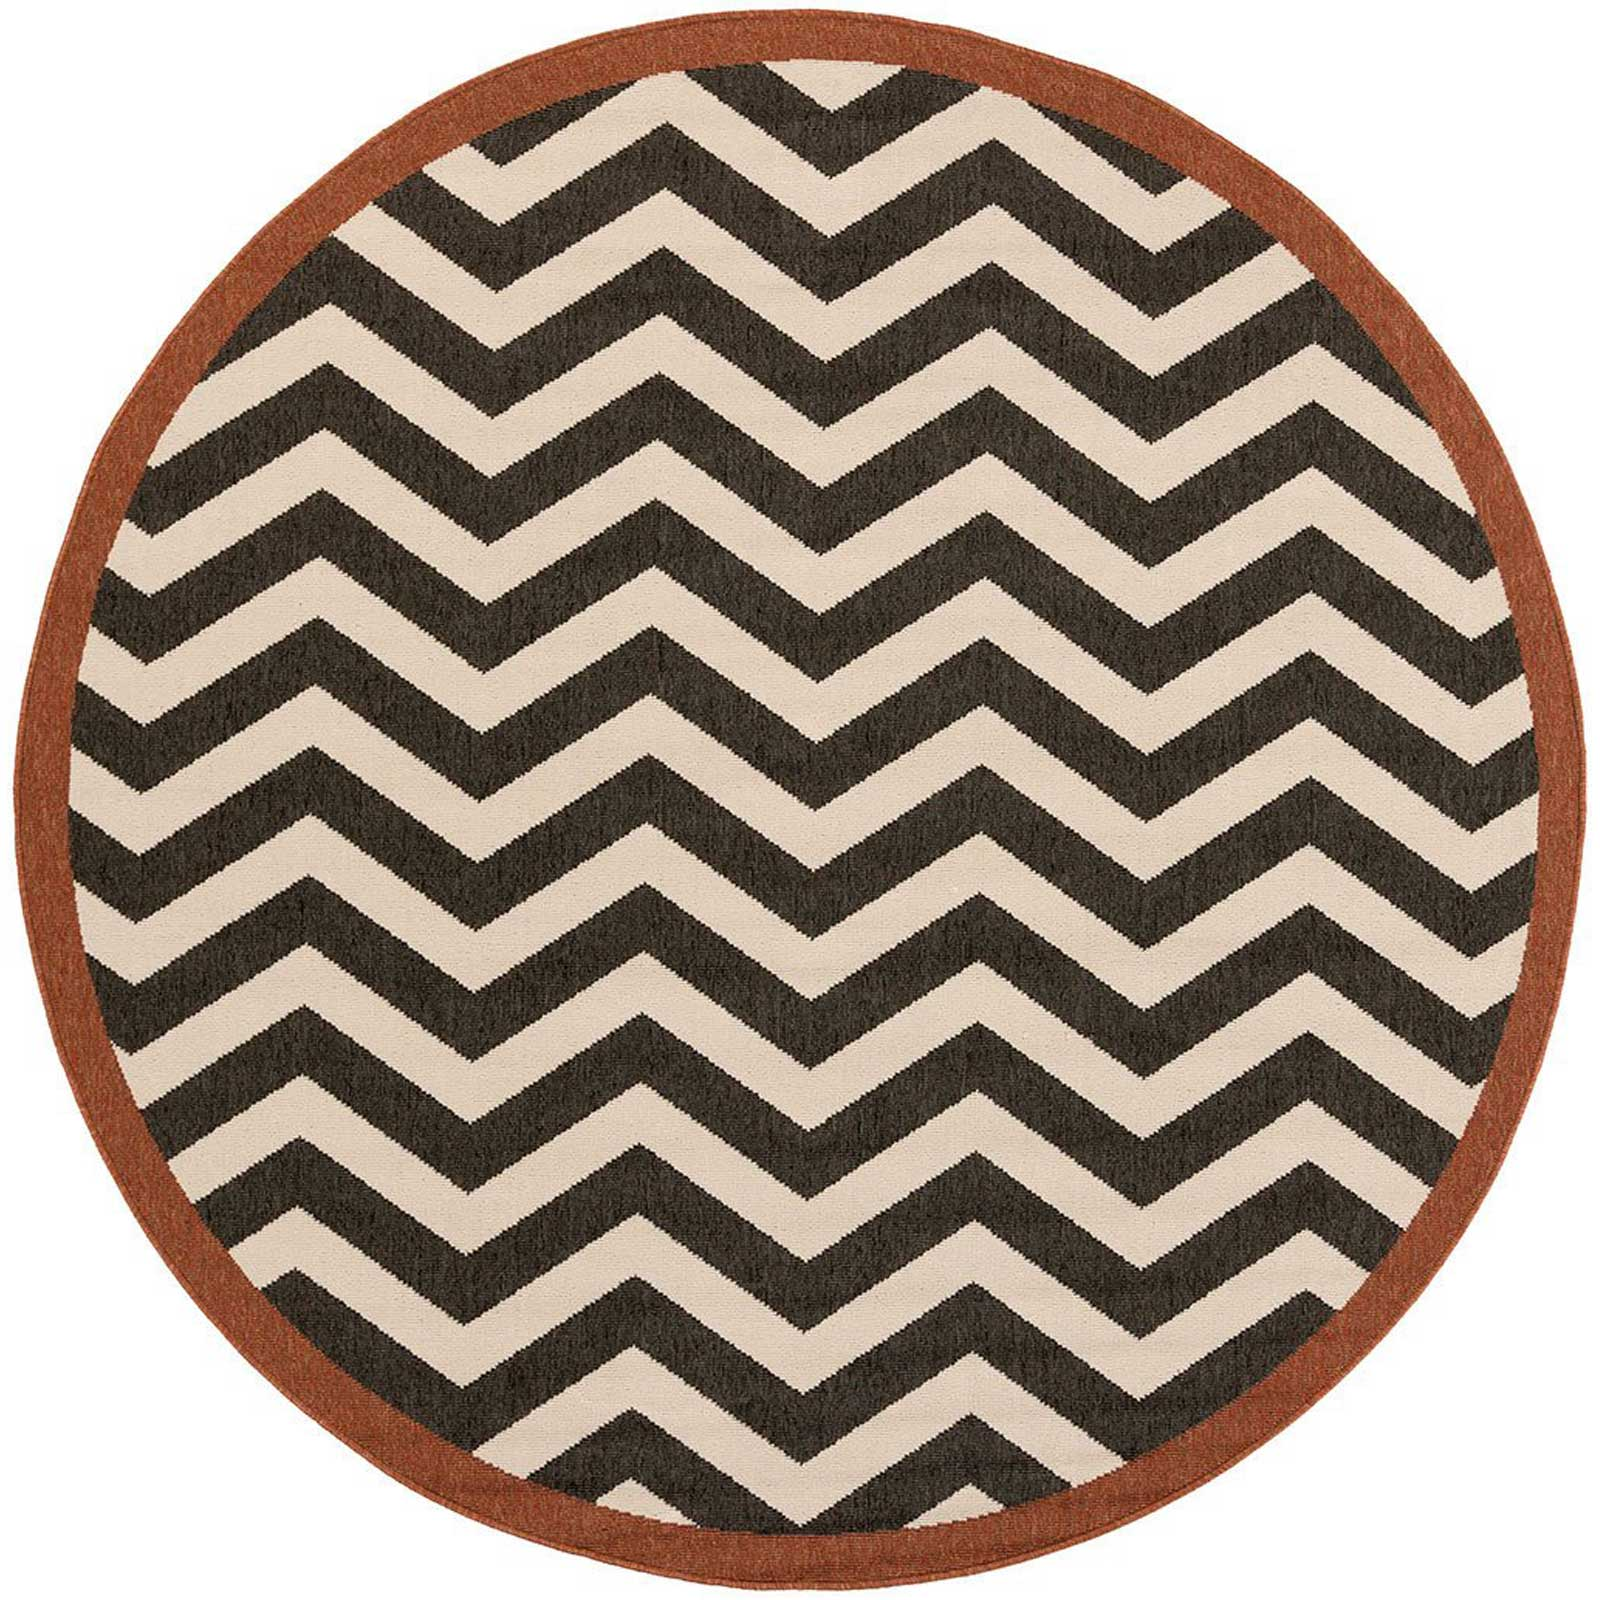 Alfresco Black/Beige Round Rug